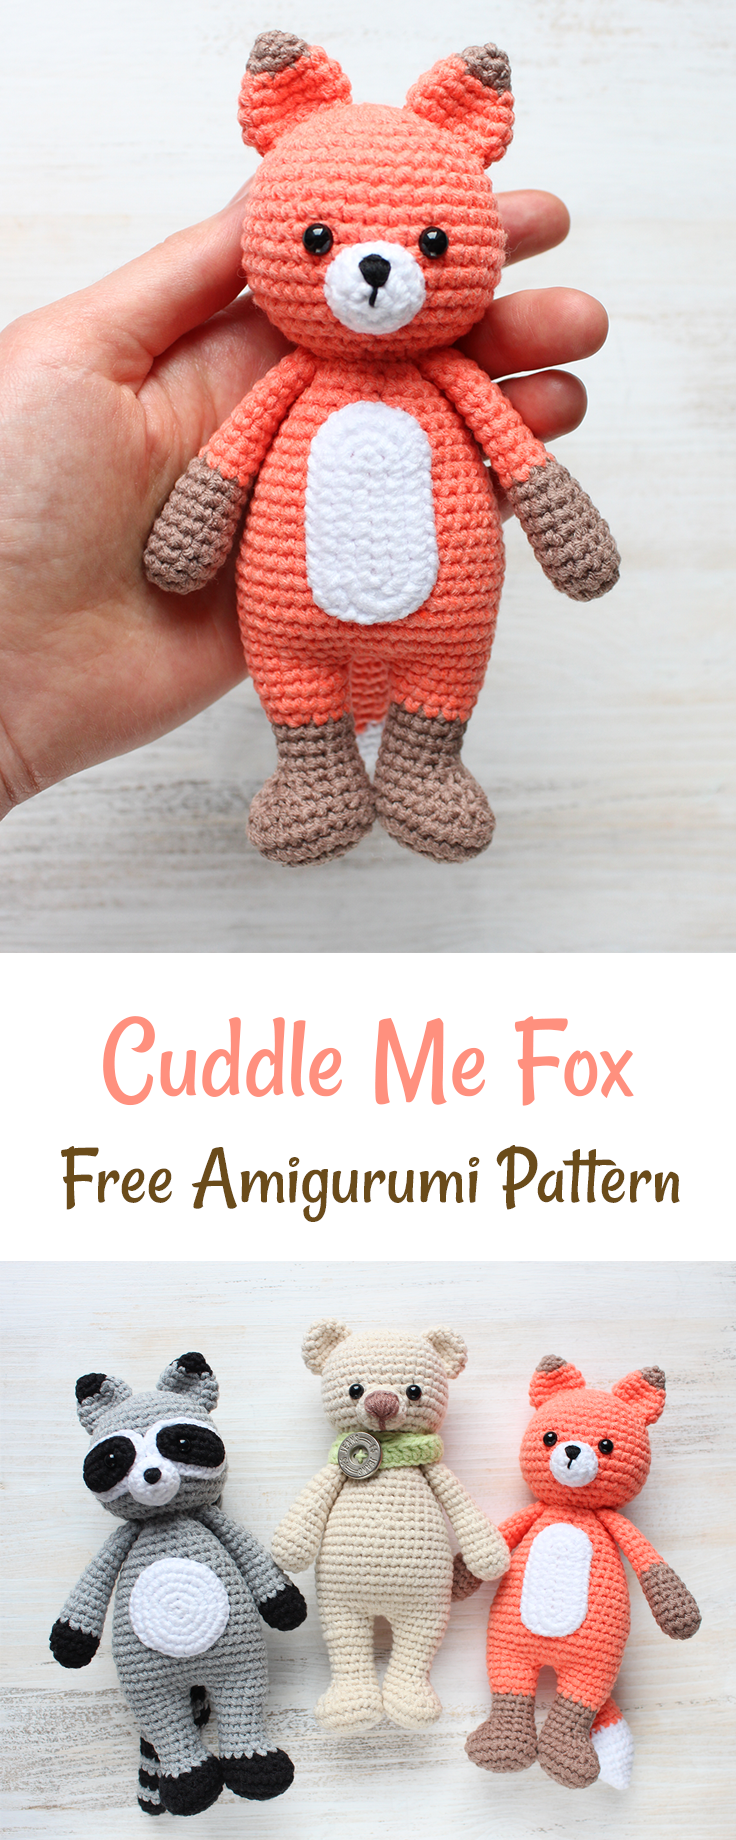 Cuddle Me Bear amigurumi pattern - Amigurumi Today | 1840x736